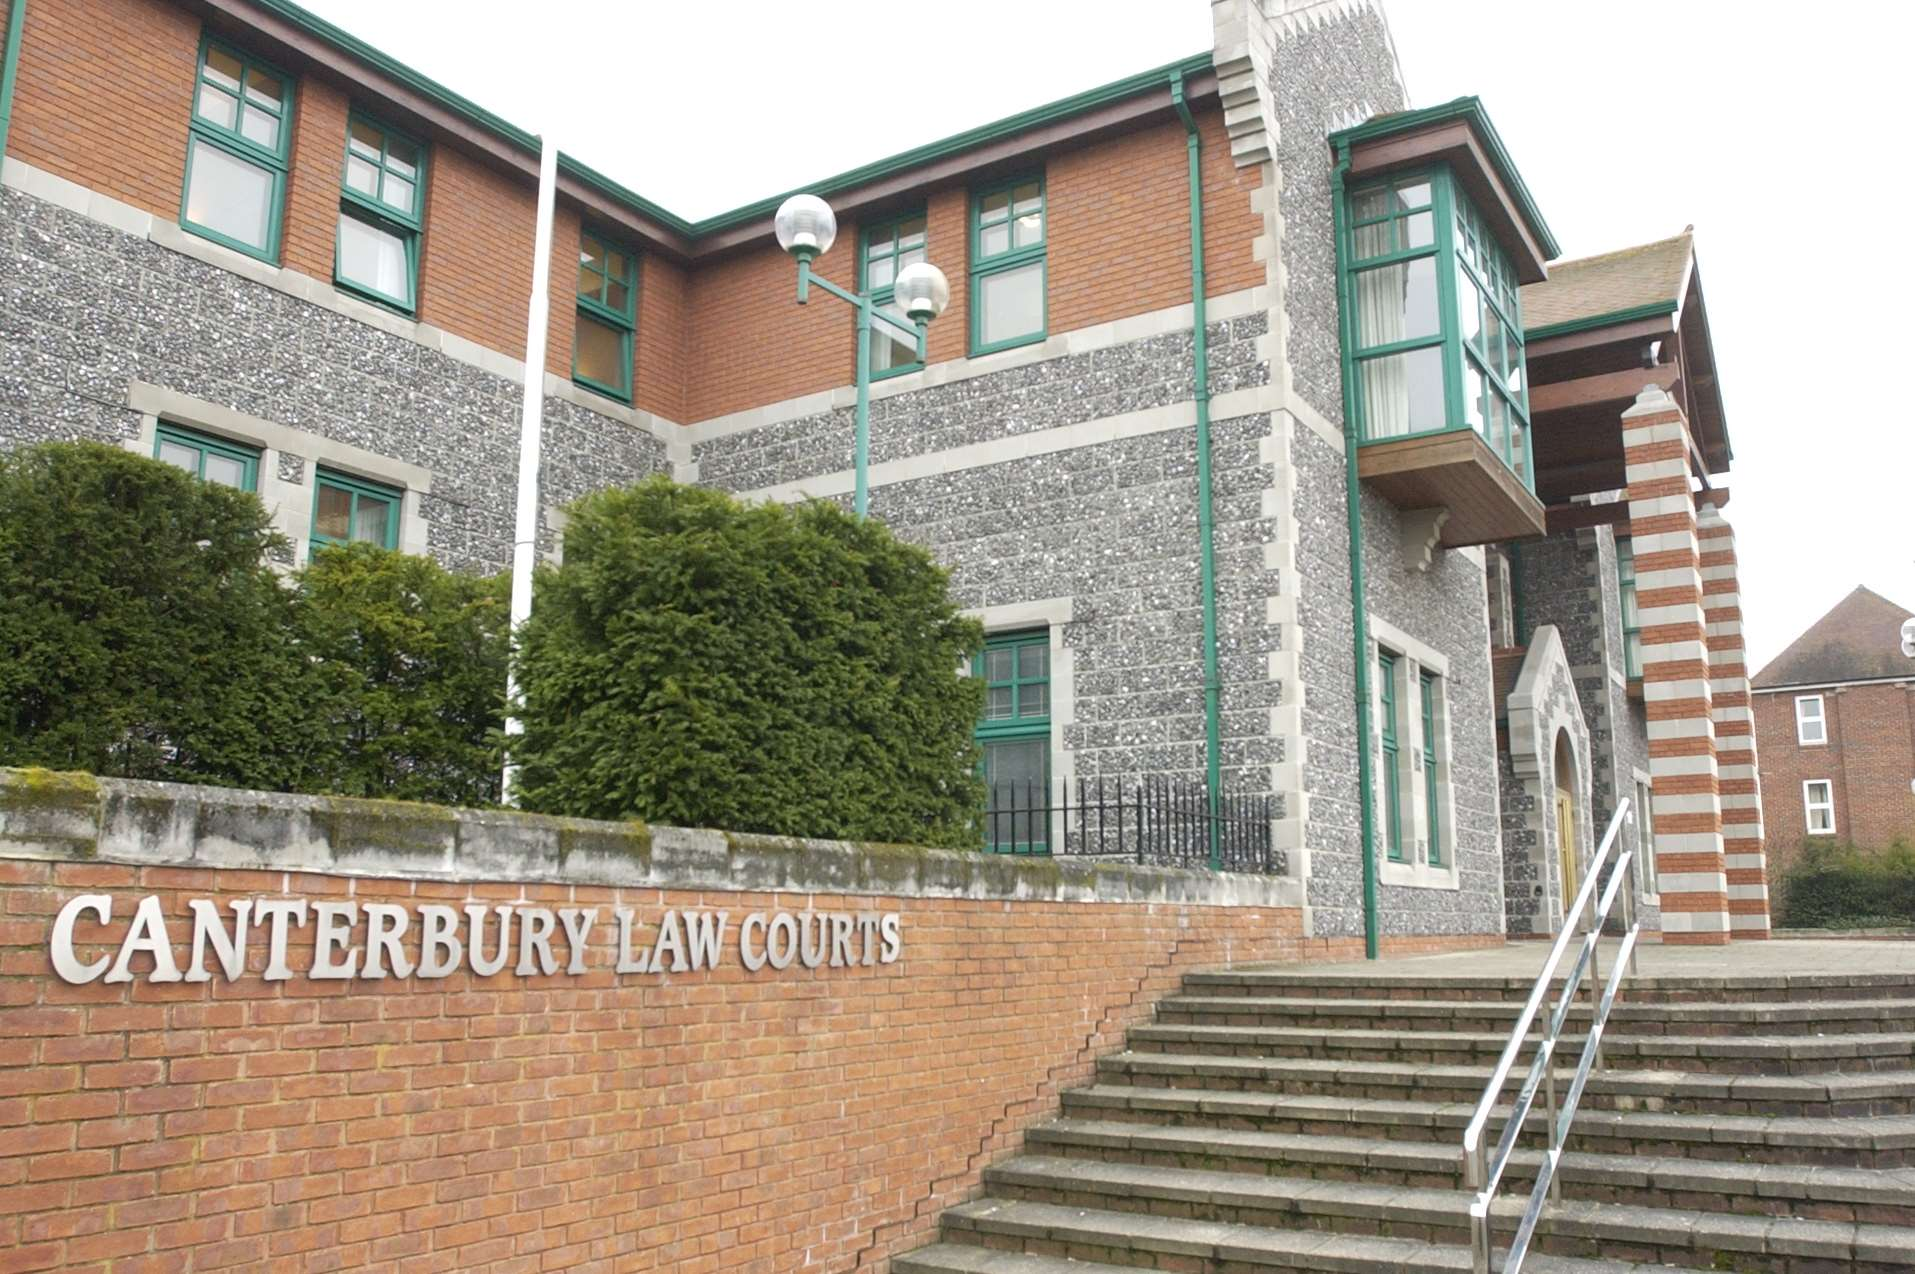 The case was heard at Canterbury Crown Court